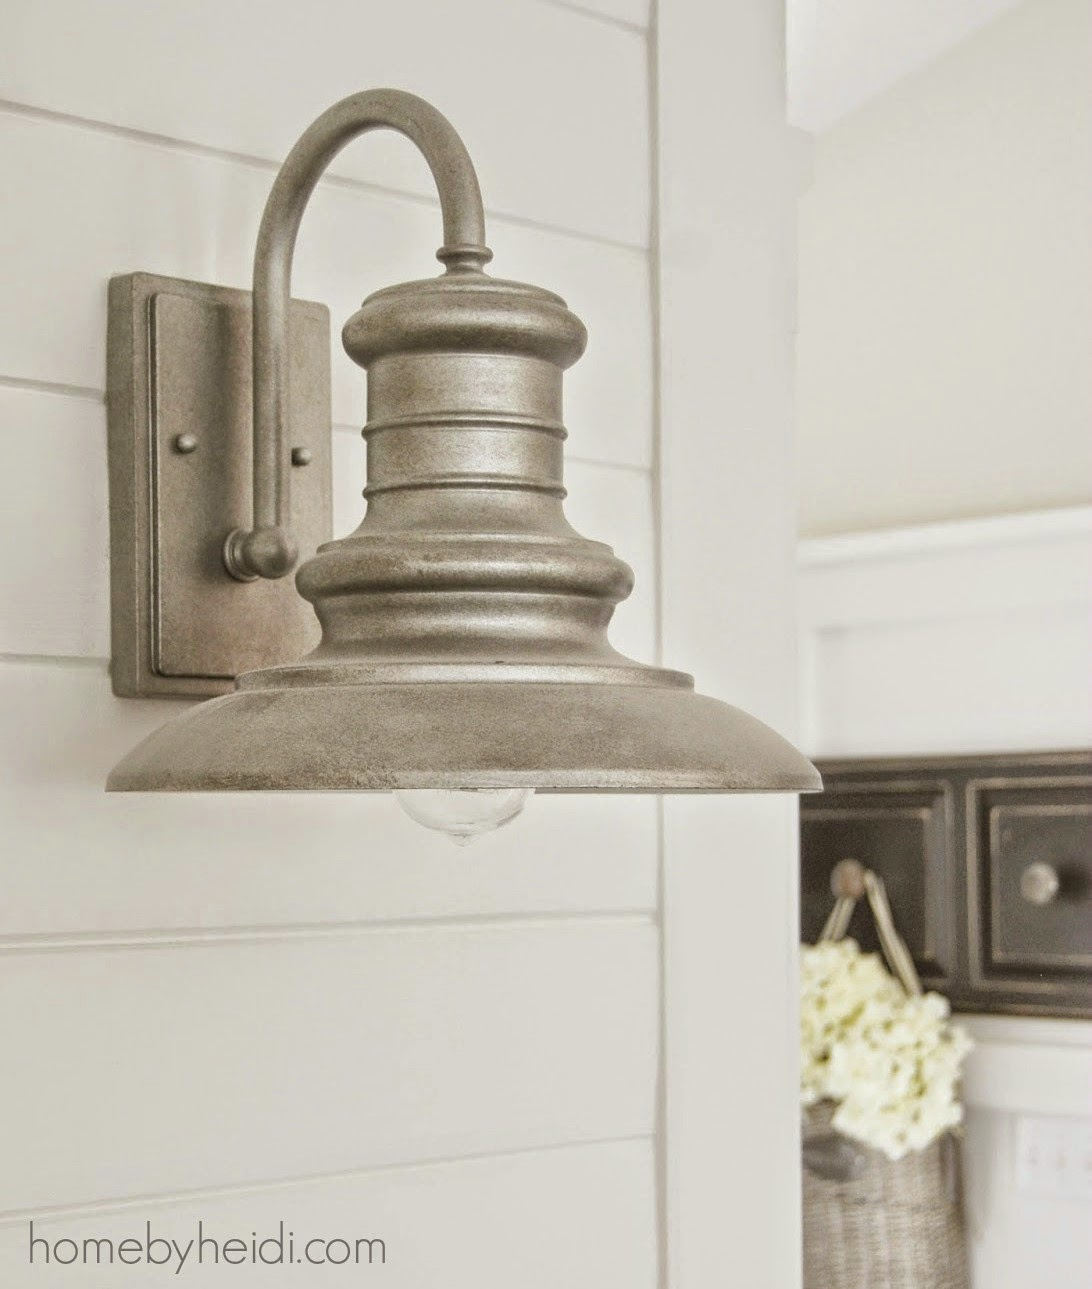 Home By Heidi How To Use Galvanized Metal In Decorating